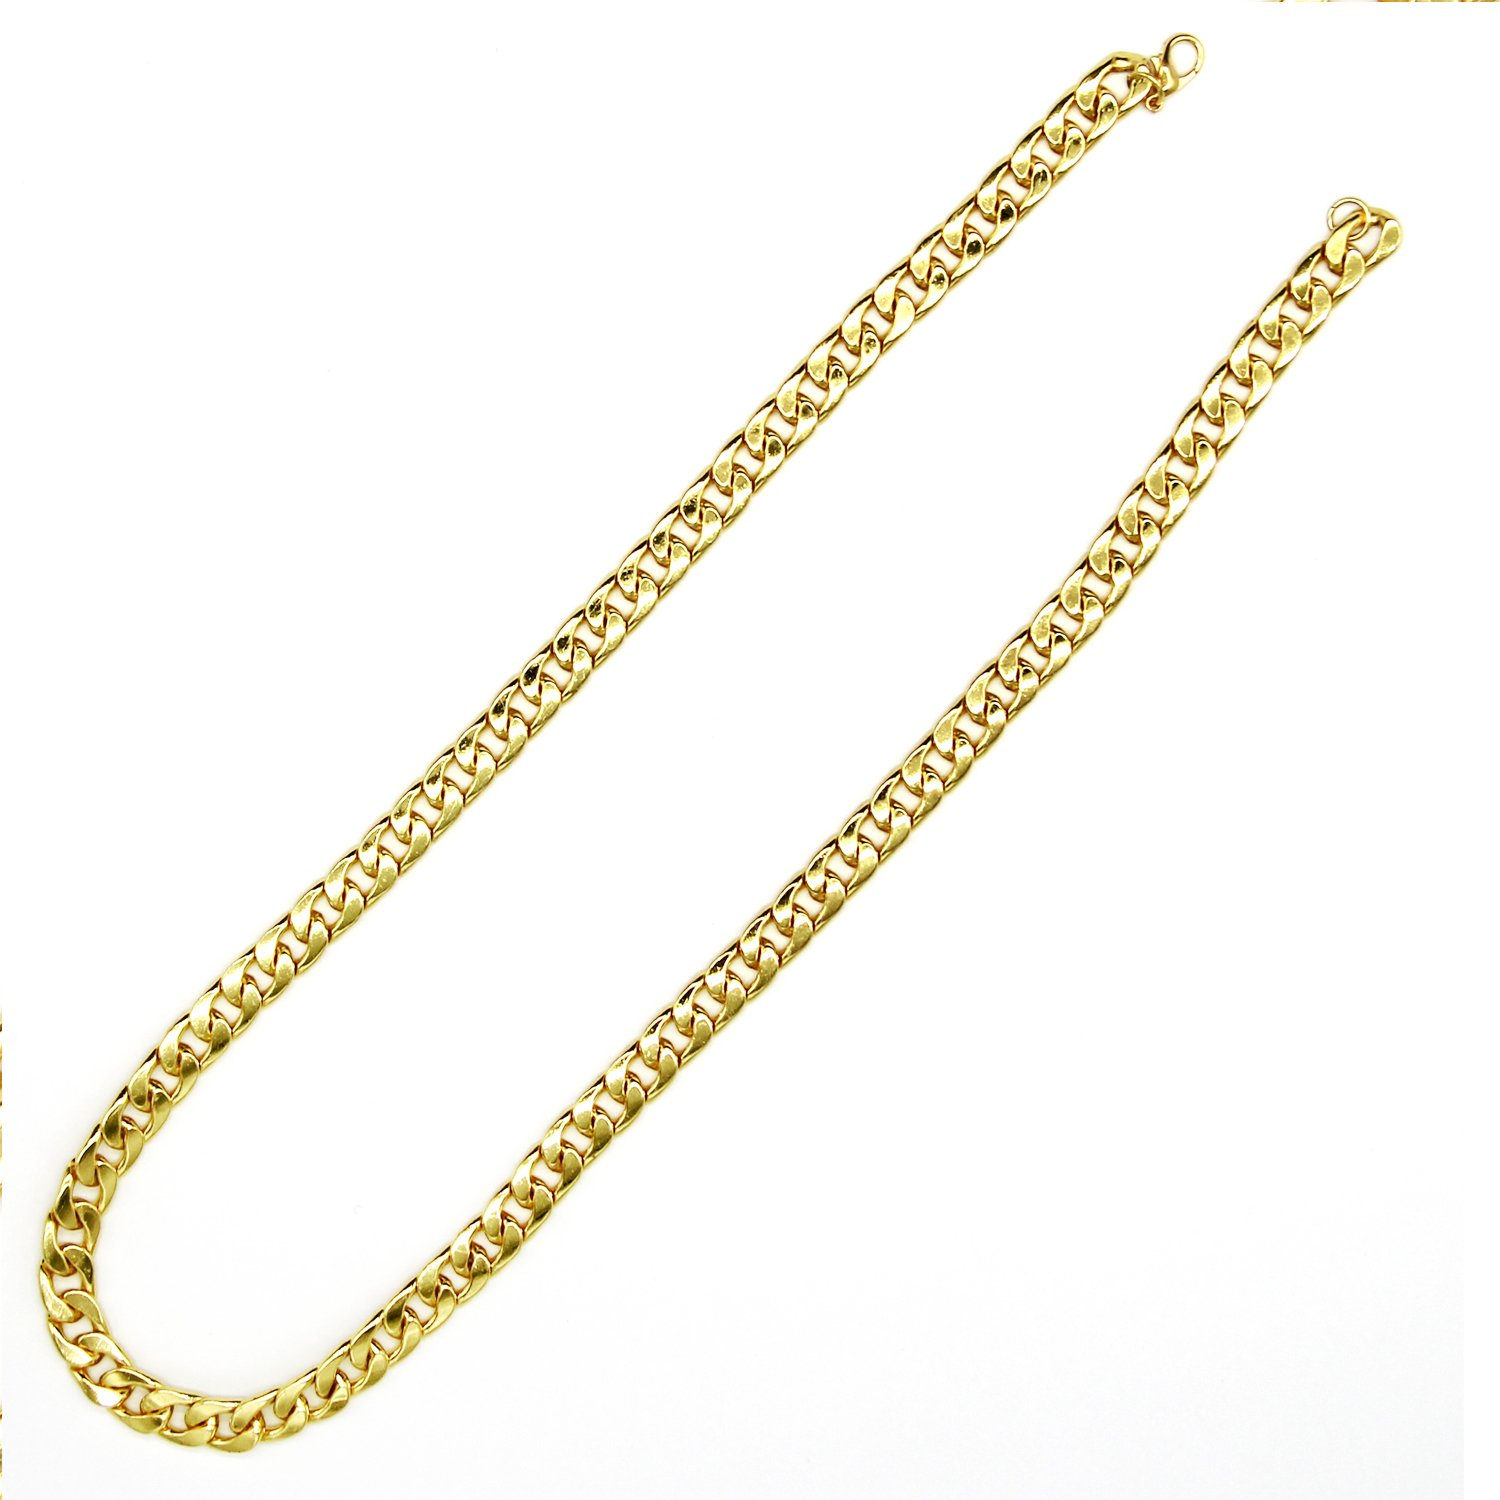 Mens Vintage Shirts – Retro Shirts TOOL GADGET Fake Gold Chain Necklace Super Luxury & Looks So Real. Stainless Steel Gold Flat Chain Curb Chains 6mm (24 inches) Fake Gold Coating Never Fade $8.99 AT vintagedancer.com